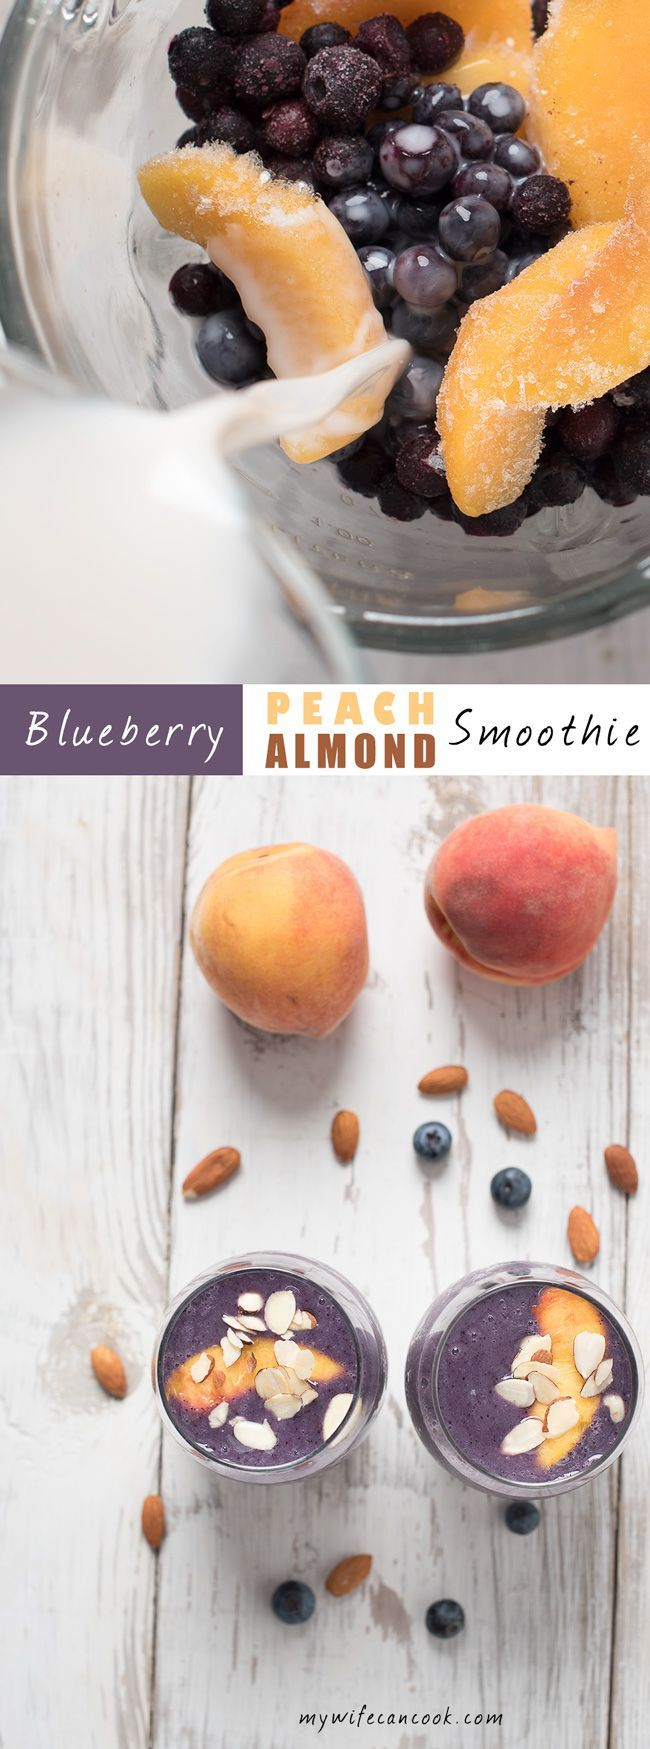 This Blueberry Peach Almond Milk Smoothie can help poweryour healthy family lifestyle. And it's vegan thanks to the almond milk! It's easy to make with only has 5 ingredients: blueberries, peaches, orange juice, bananas, and almond milk. Of course, you can always adapt it to your liking. But fruit smoothies are a great choice for healthy kid and grownup snack options. There are endless variations and lots of reasons to love them; See the post for our top 8 reason to love fruit smoothies!